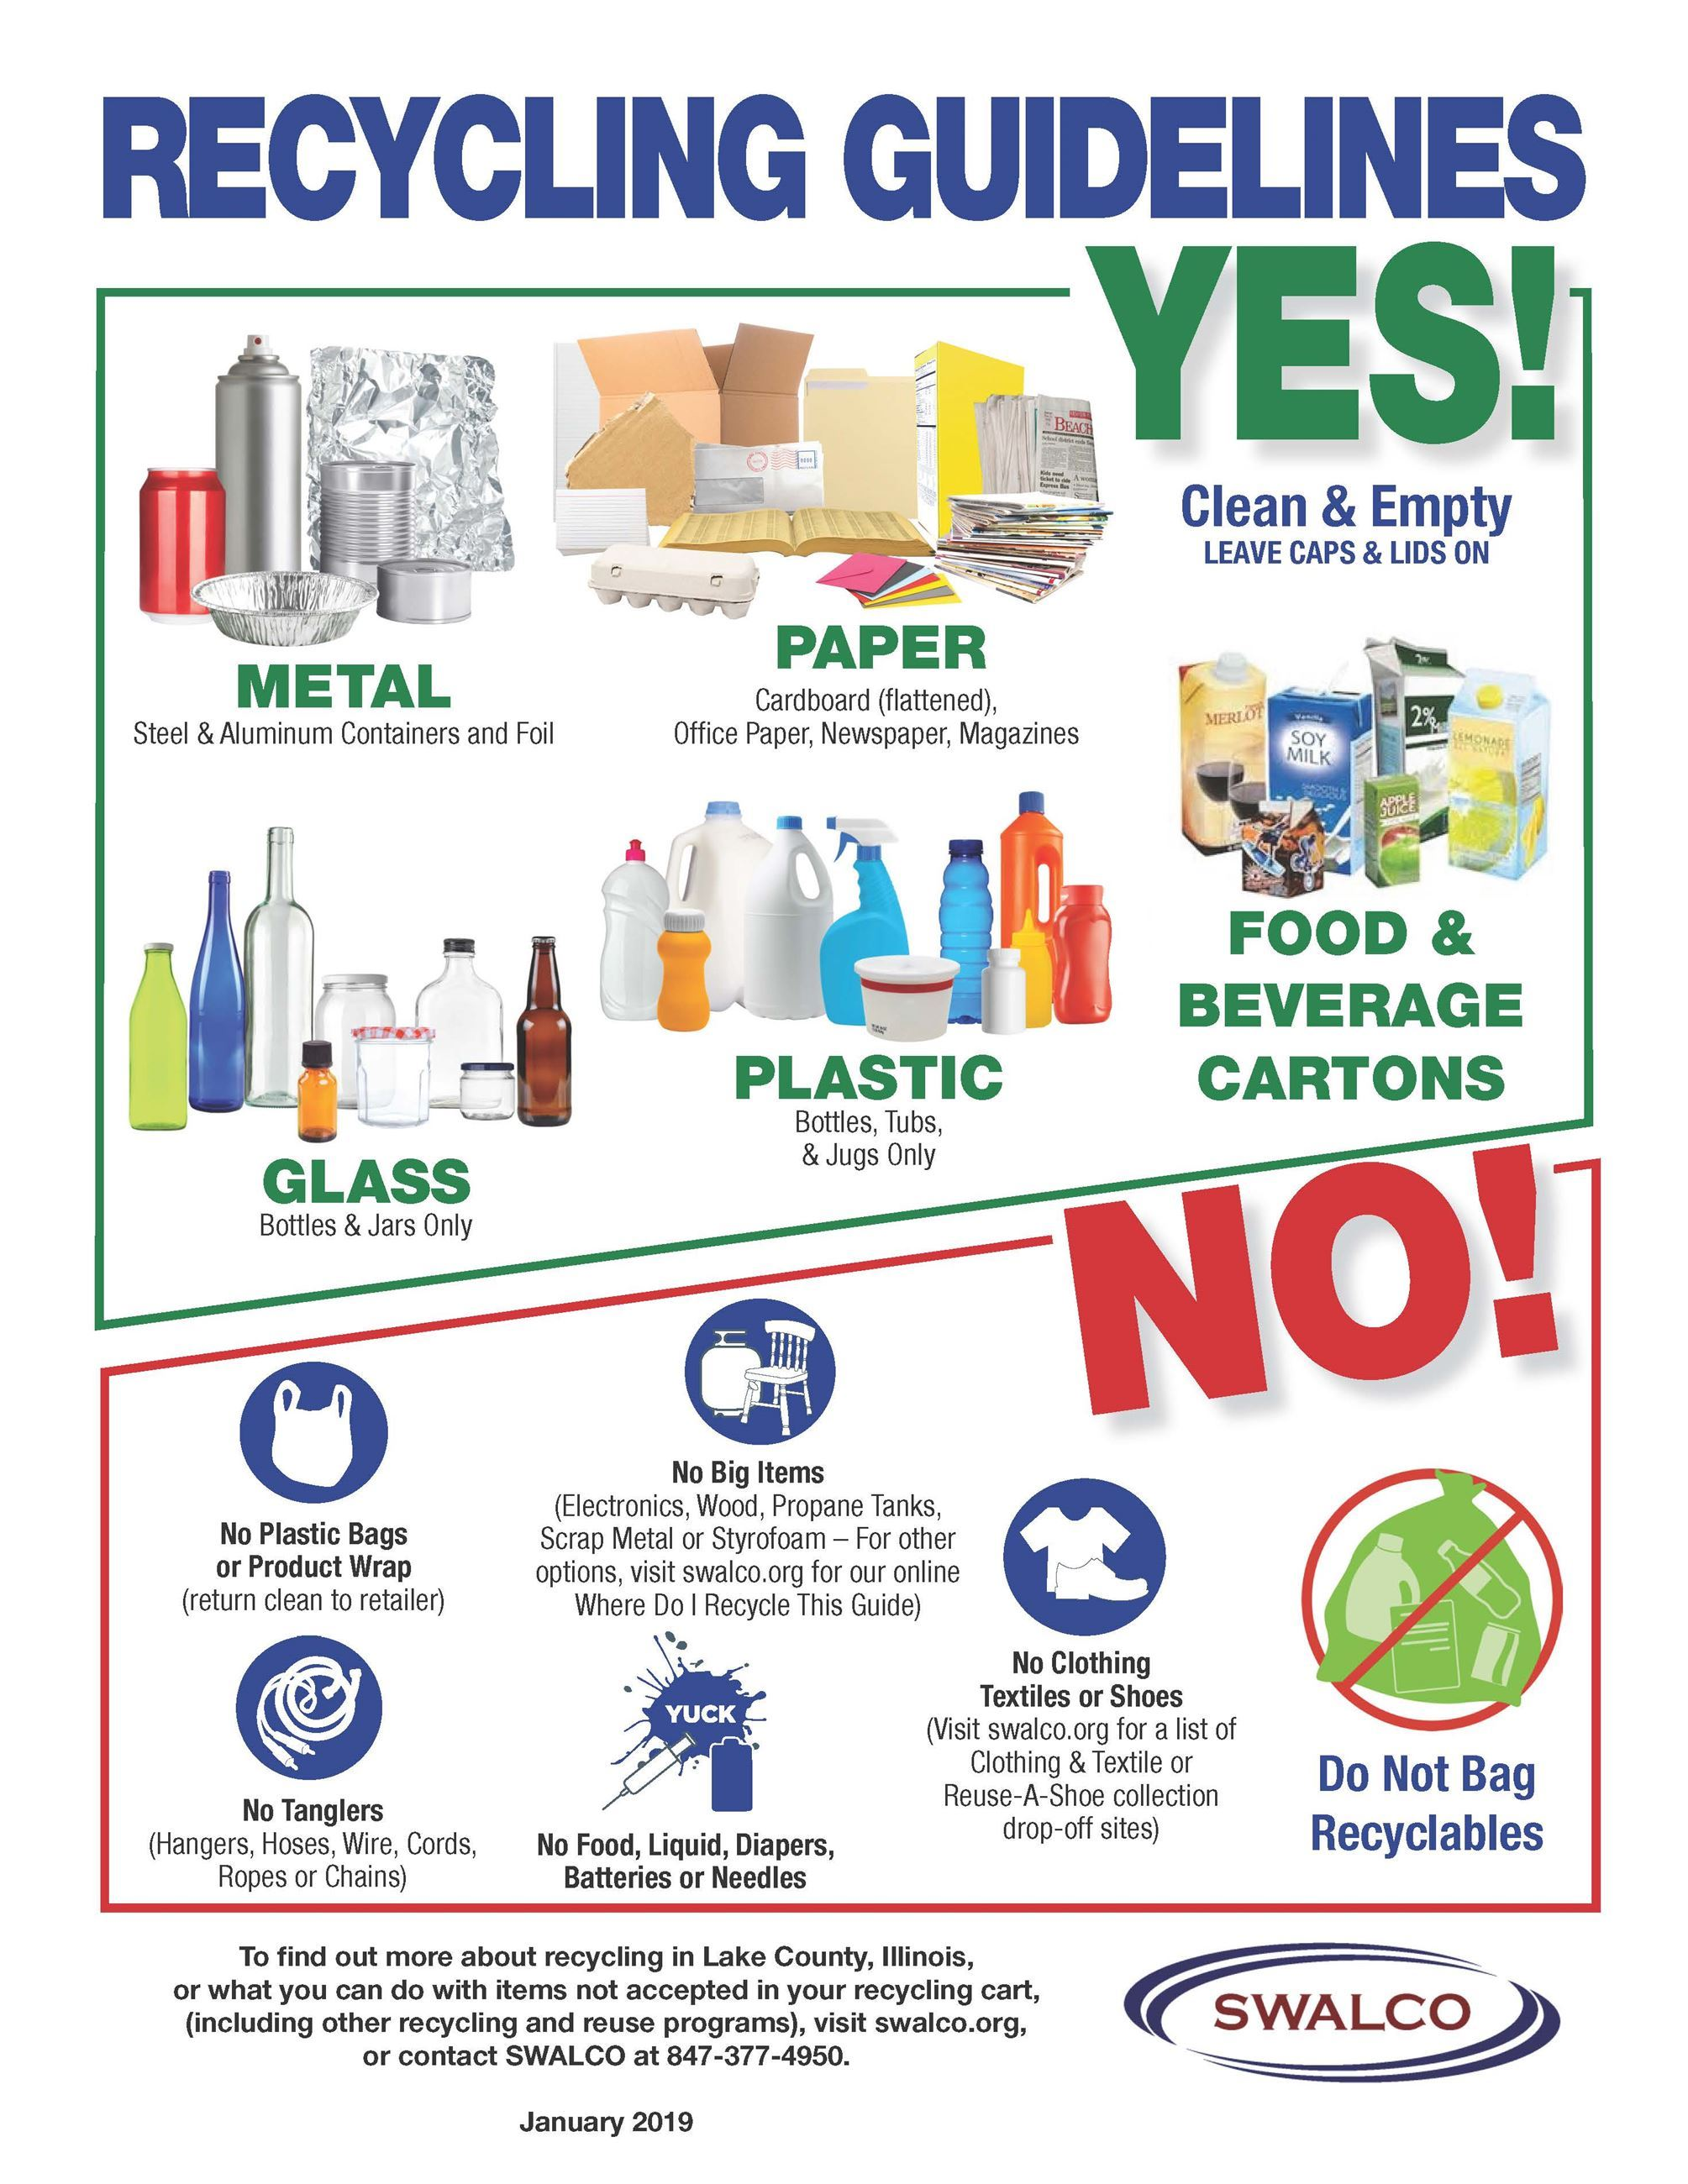 Recycling Guidelines - What Can and Cannot Be Recycled